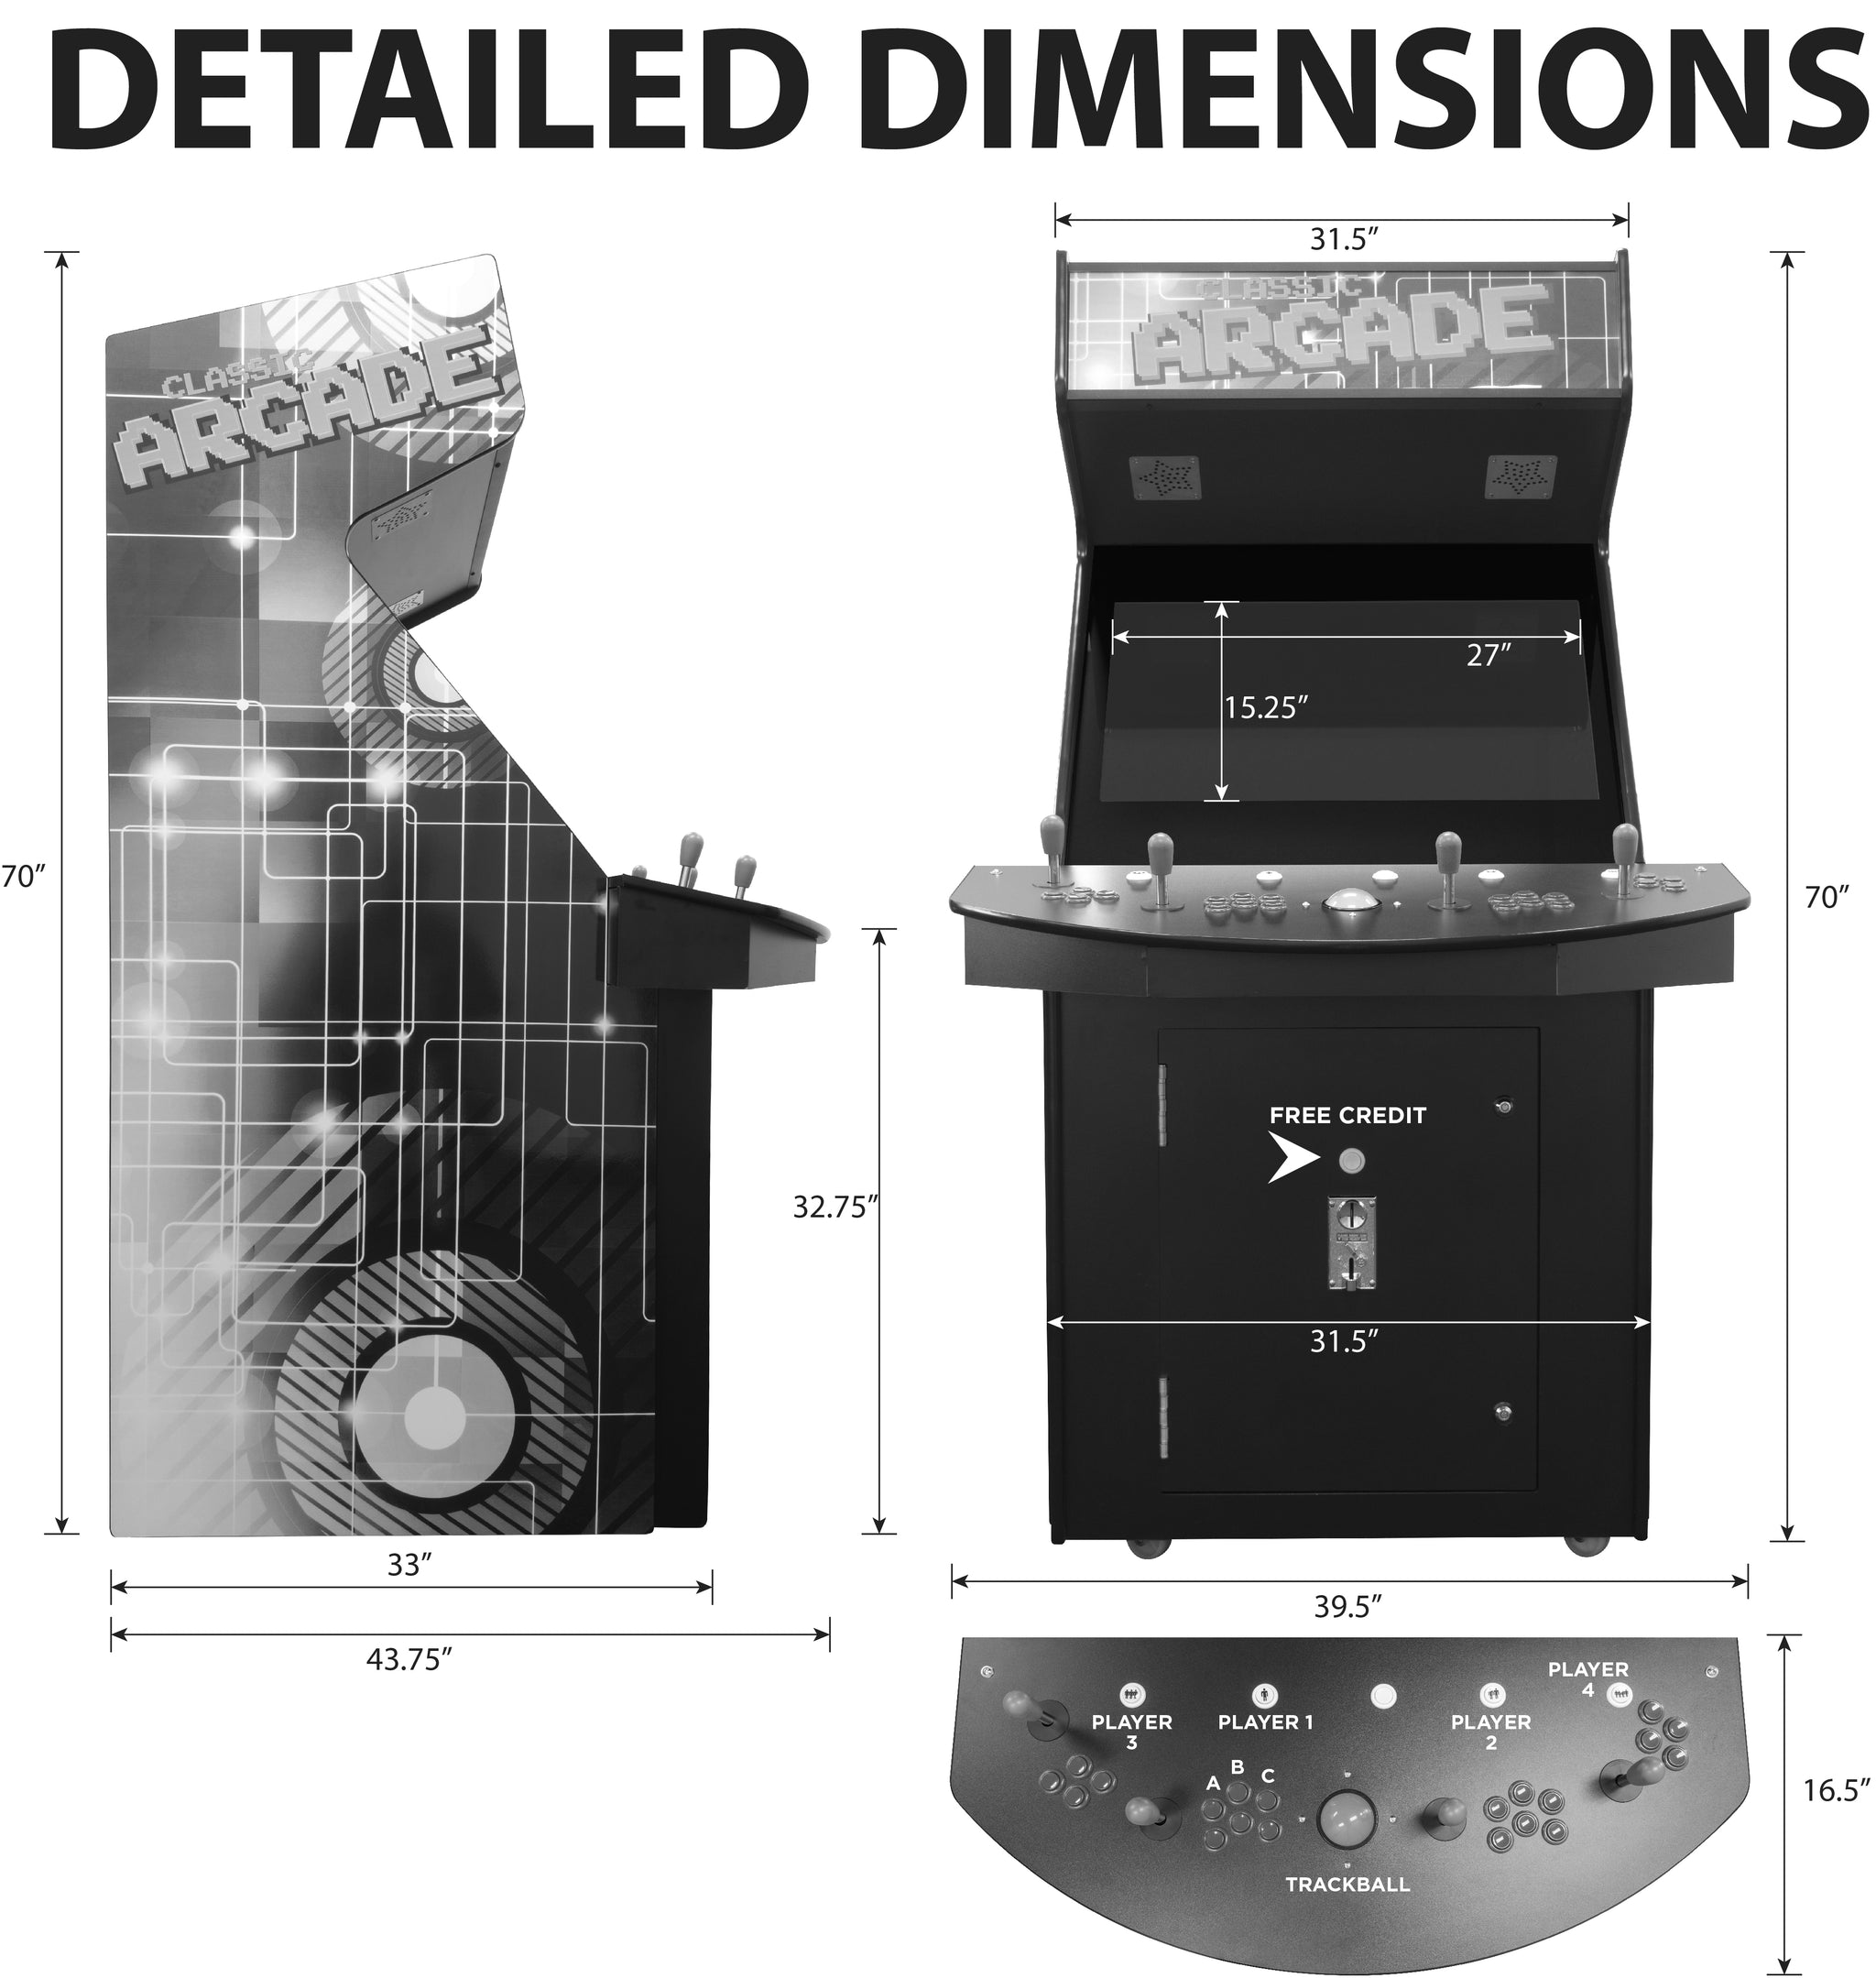 174135 Full Size Stand Up Arcade Dimensions